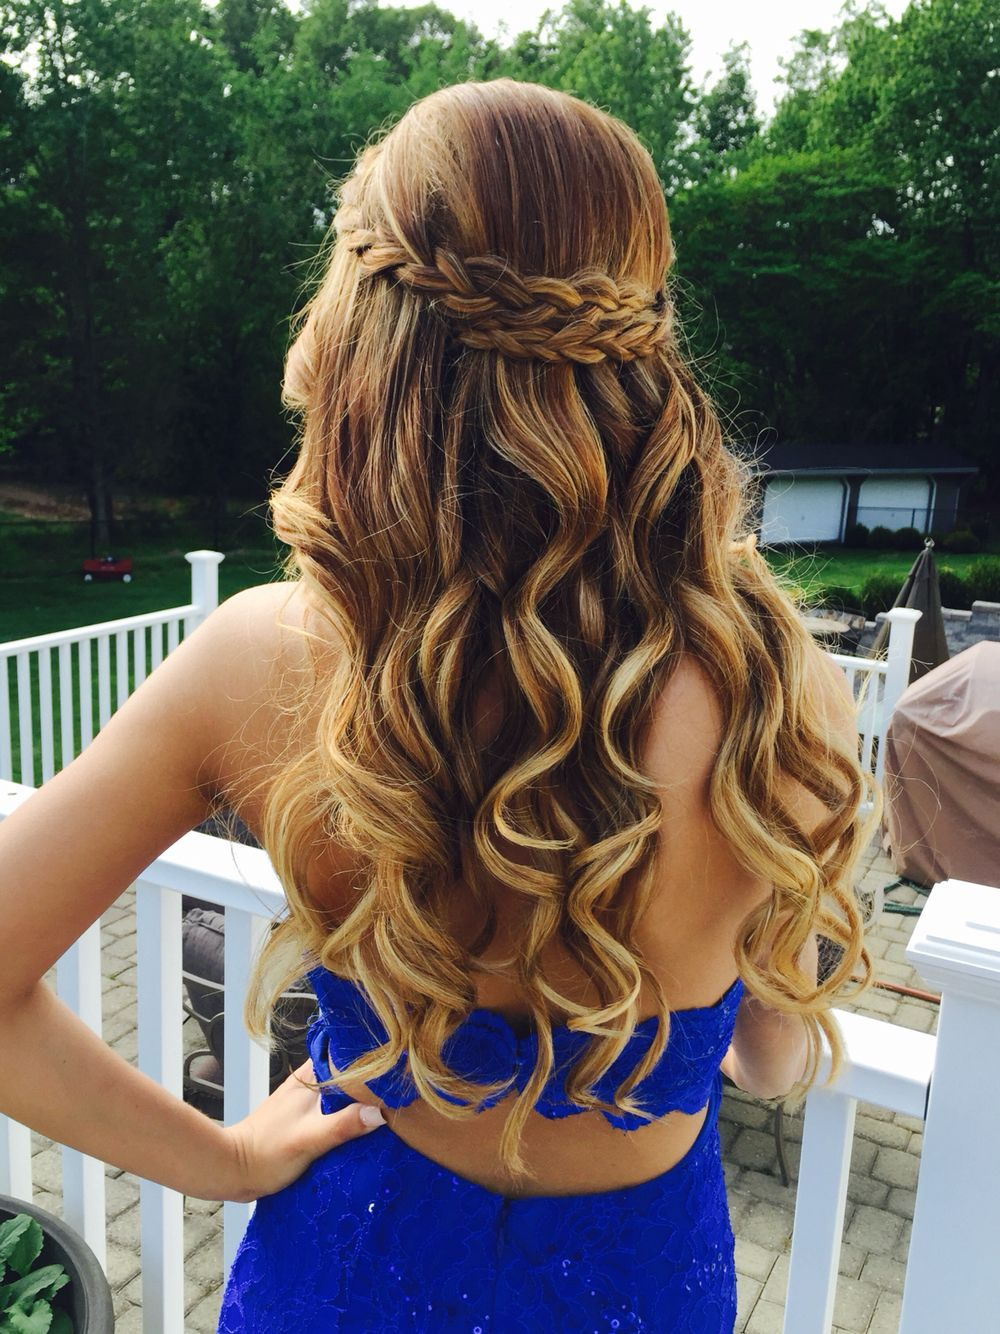 Find Your Perfect Prom Hairstyles For A Head Turning Effect In The